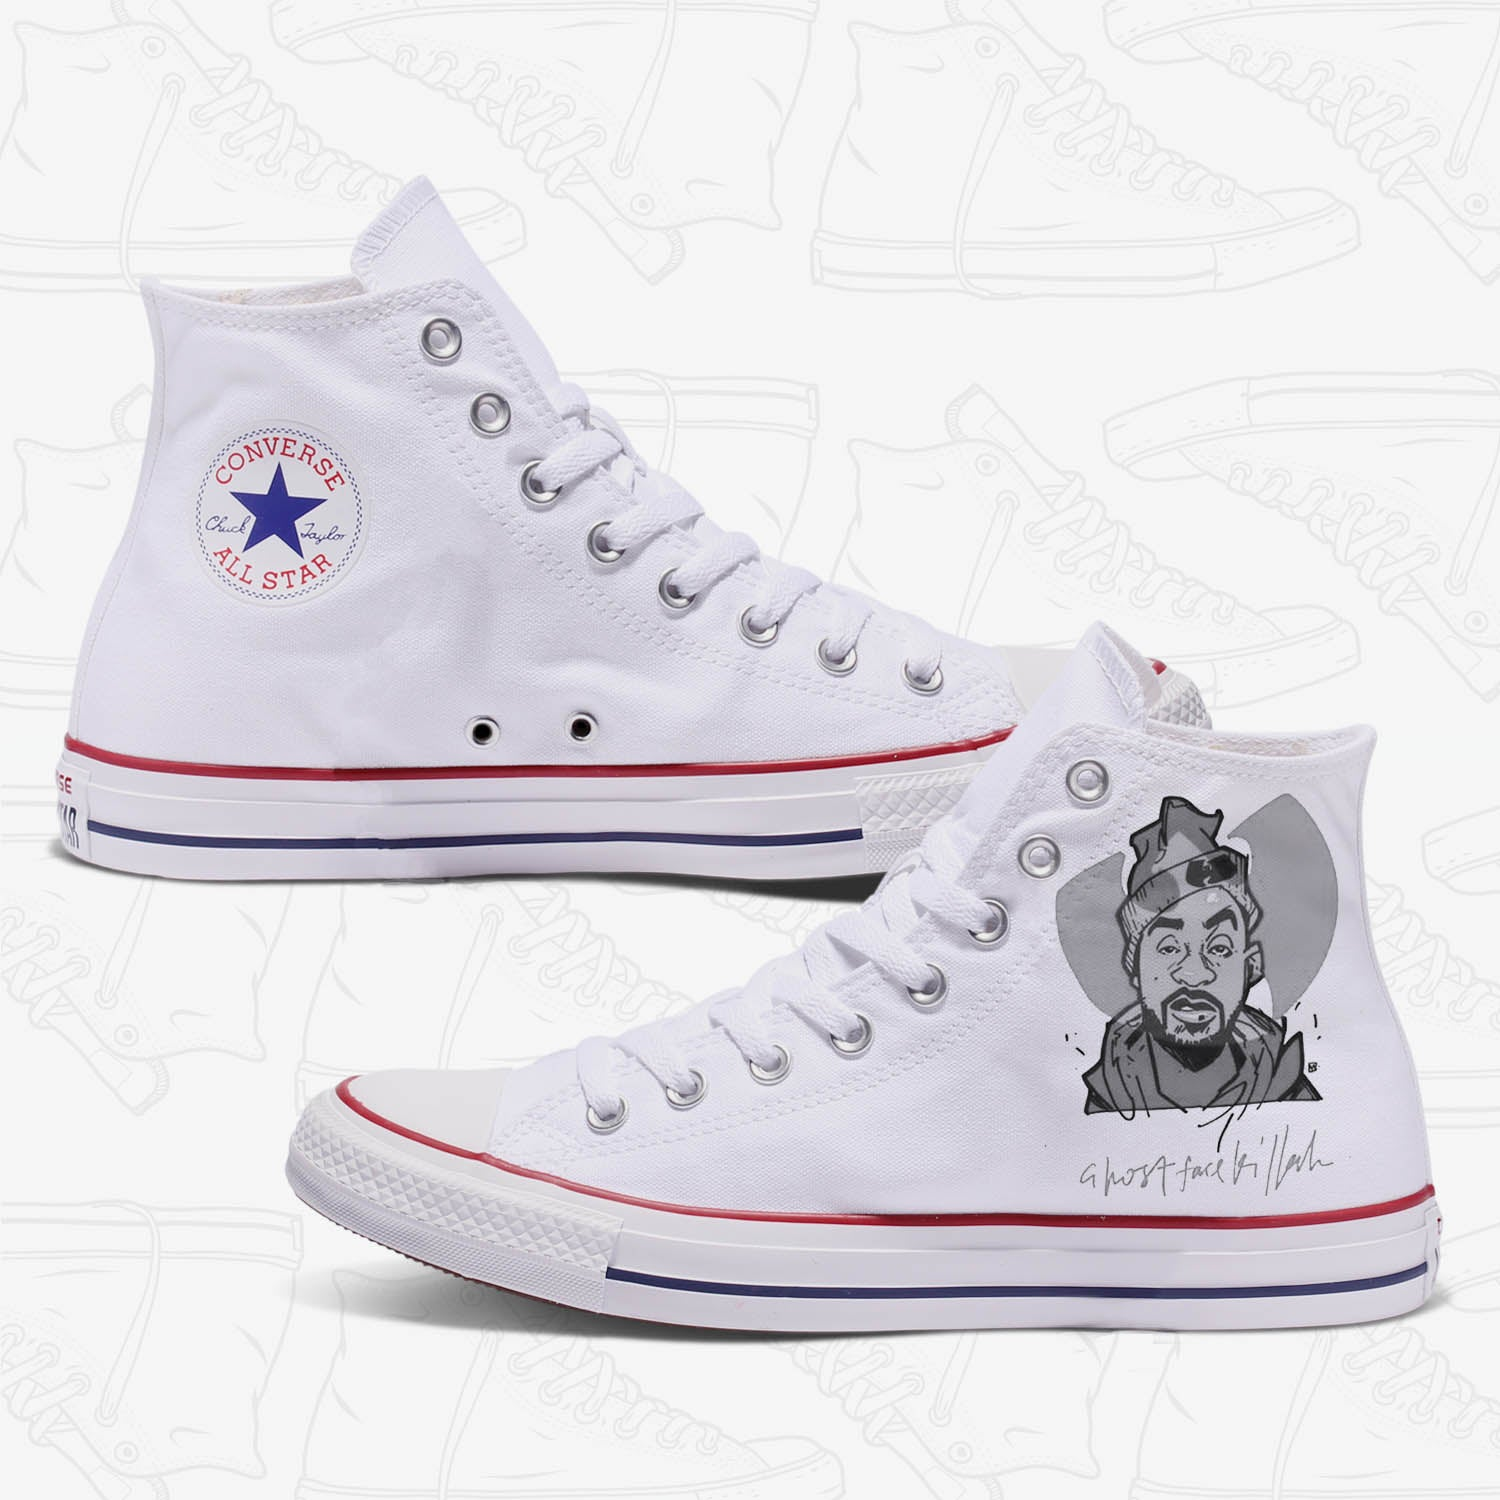 Ghostface Killah Adult Custom Converse